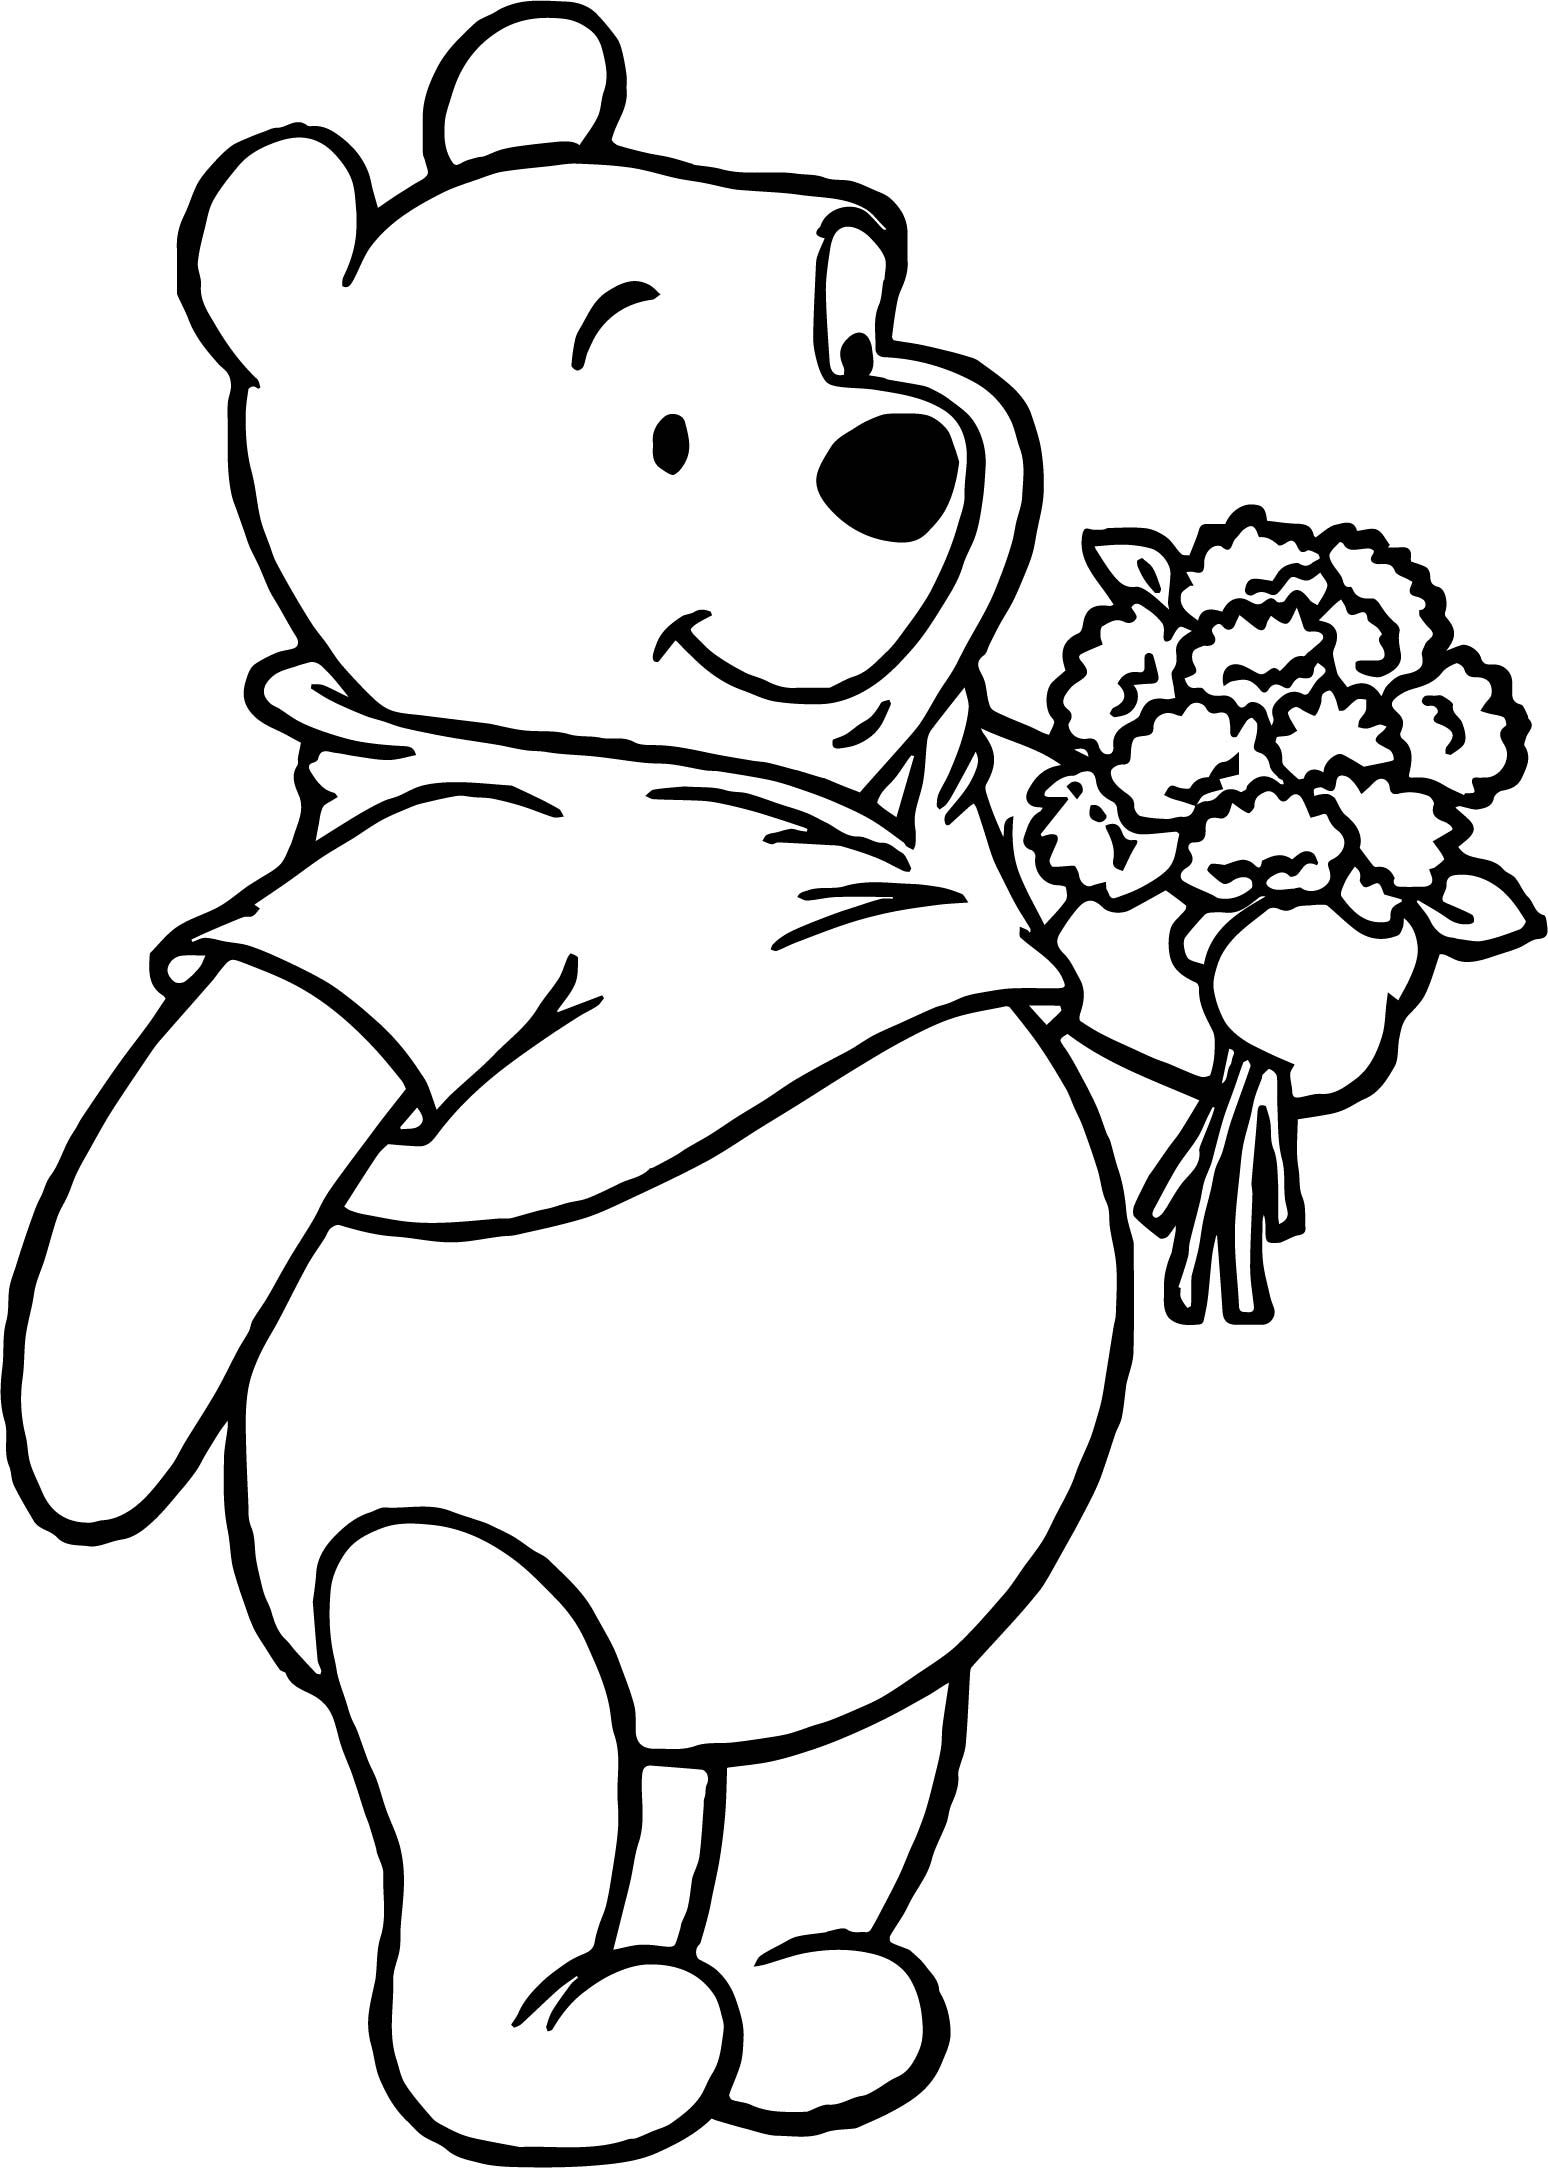 Winnie the Pooh Coloring Pages Cute coloring pages